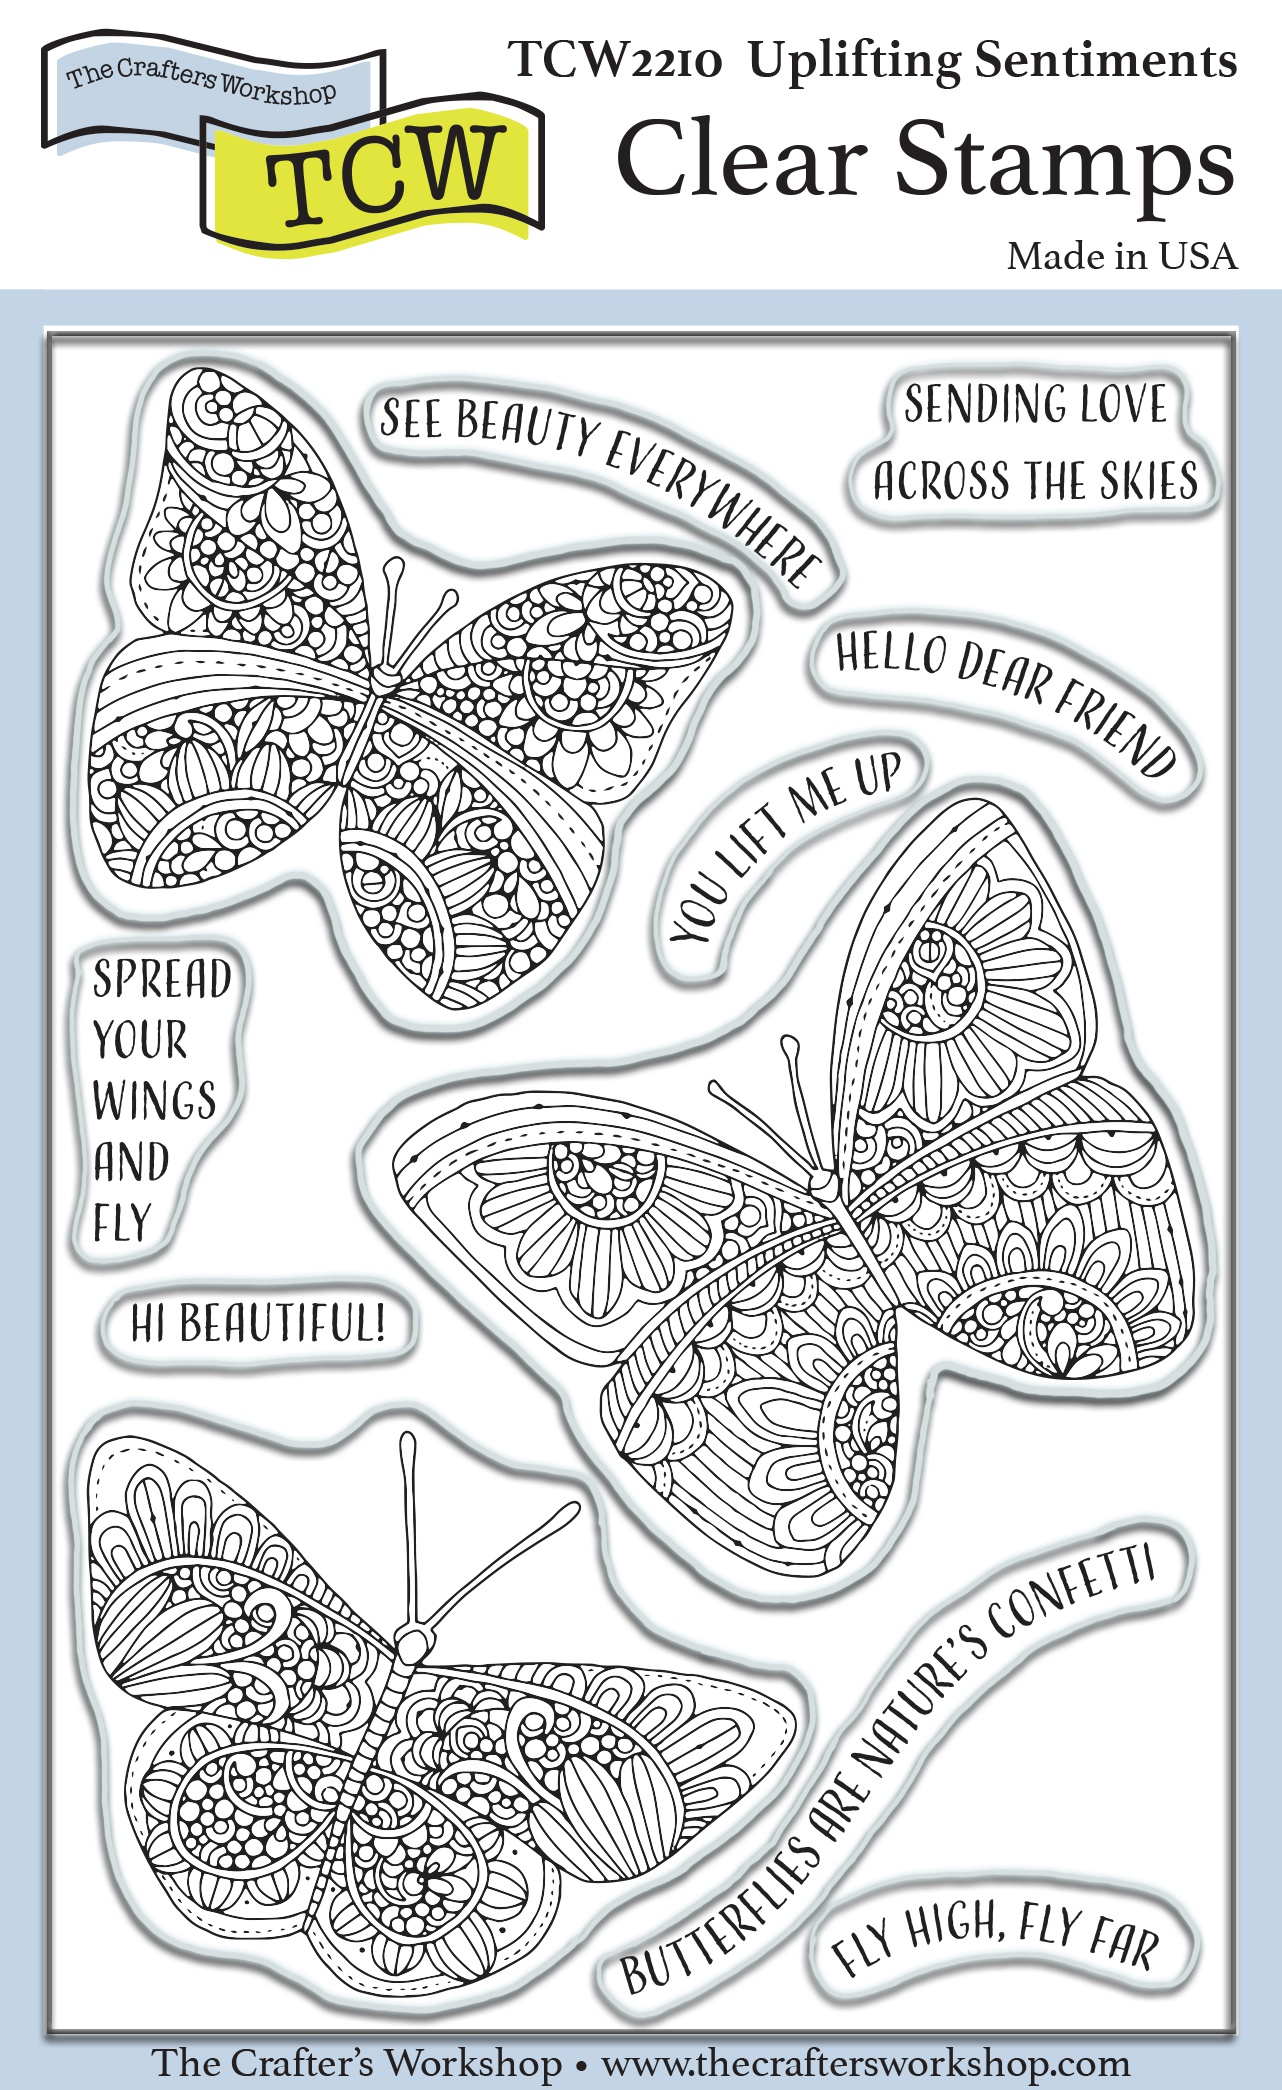 Crafter's Workshop Clear Stamps 4X6-Uplifting Sentiments